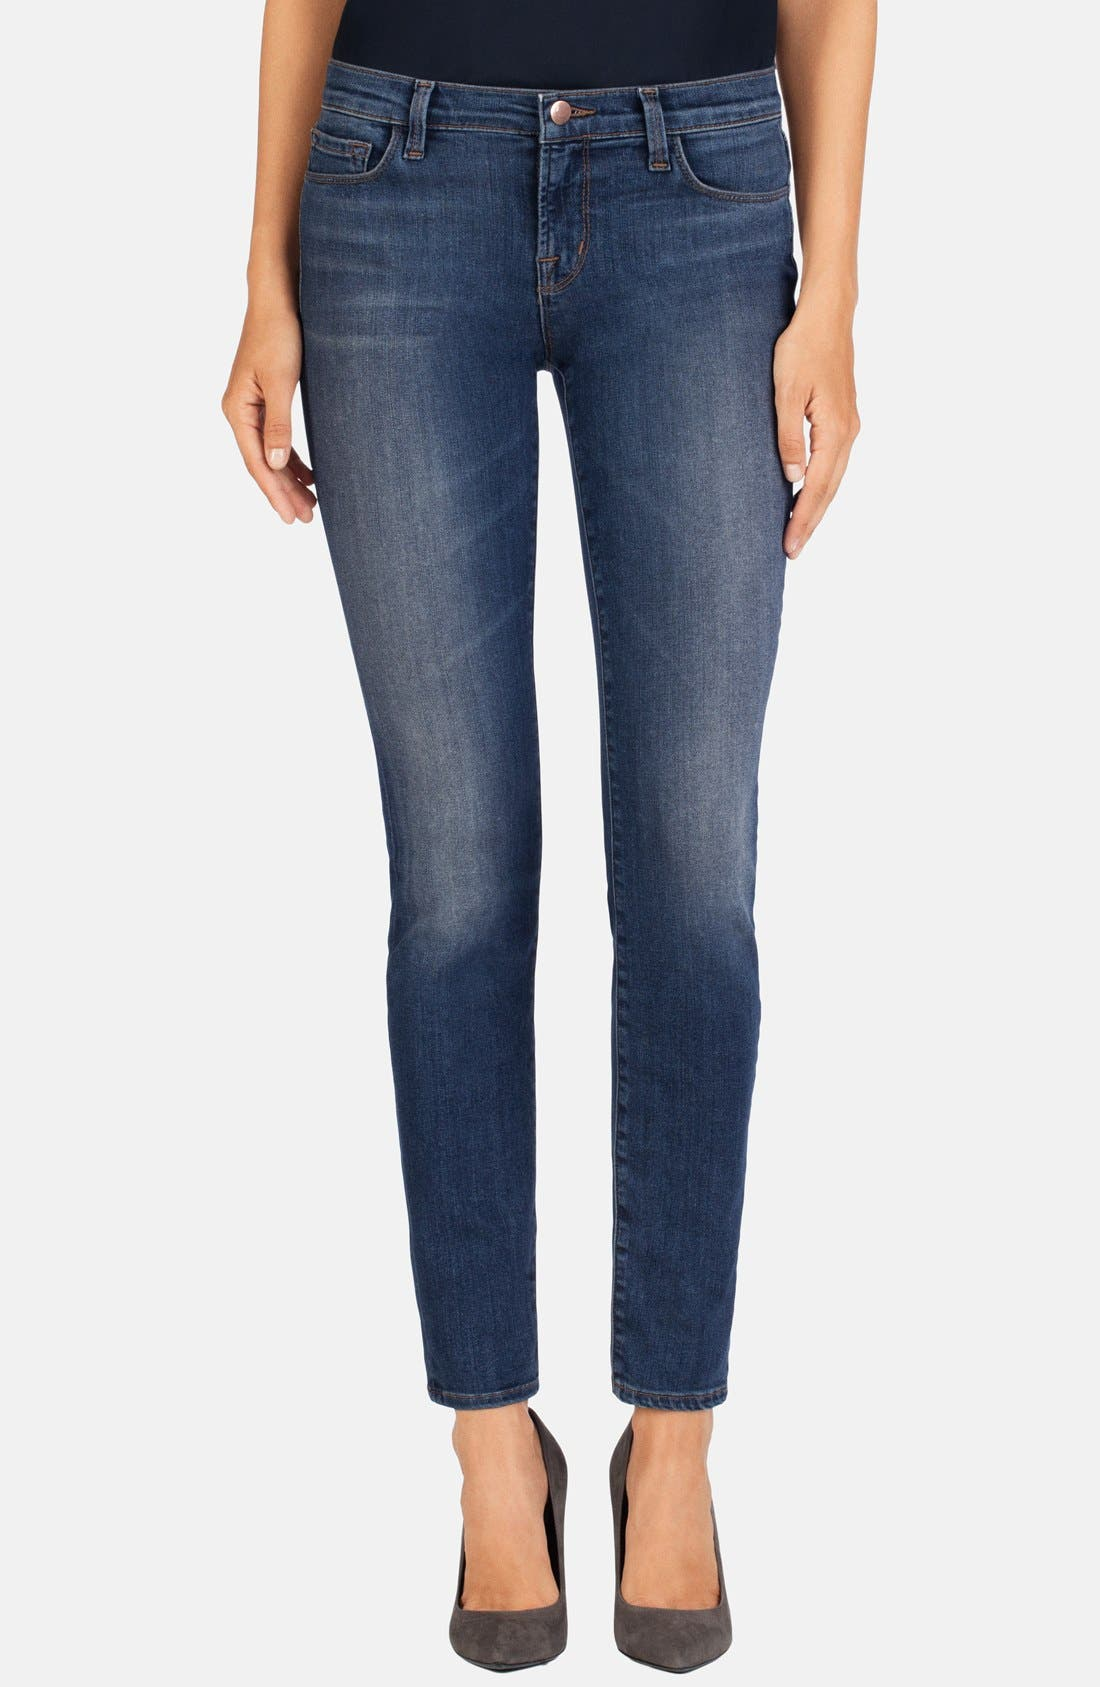 Main Image - J Brand Mid Rise Super Skinny Jeans (Lucent)